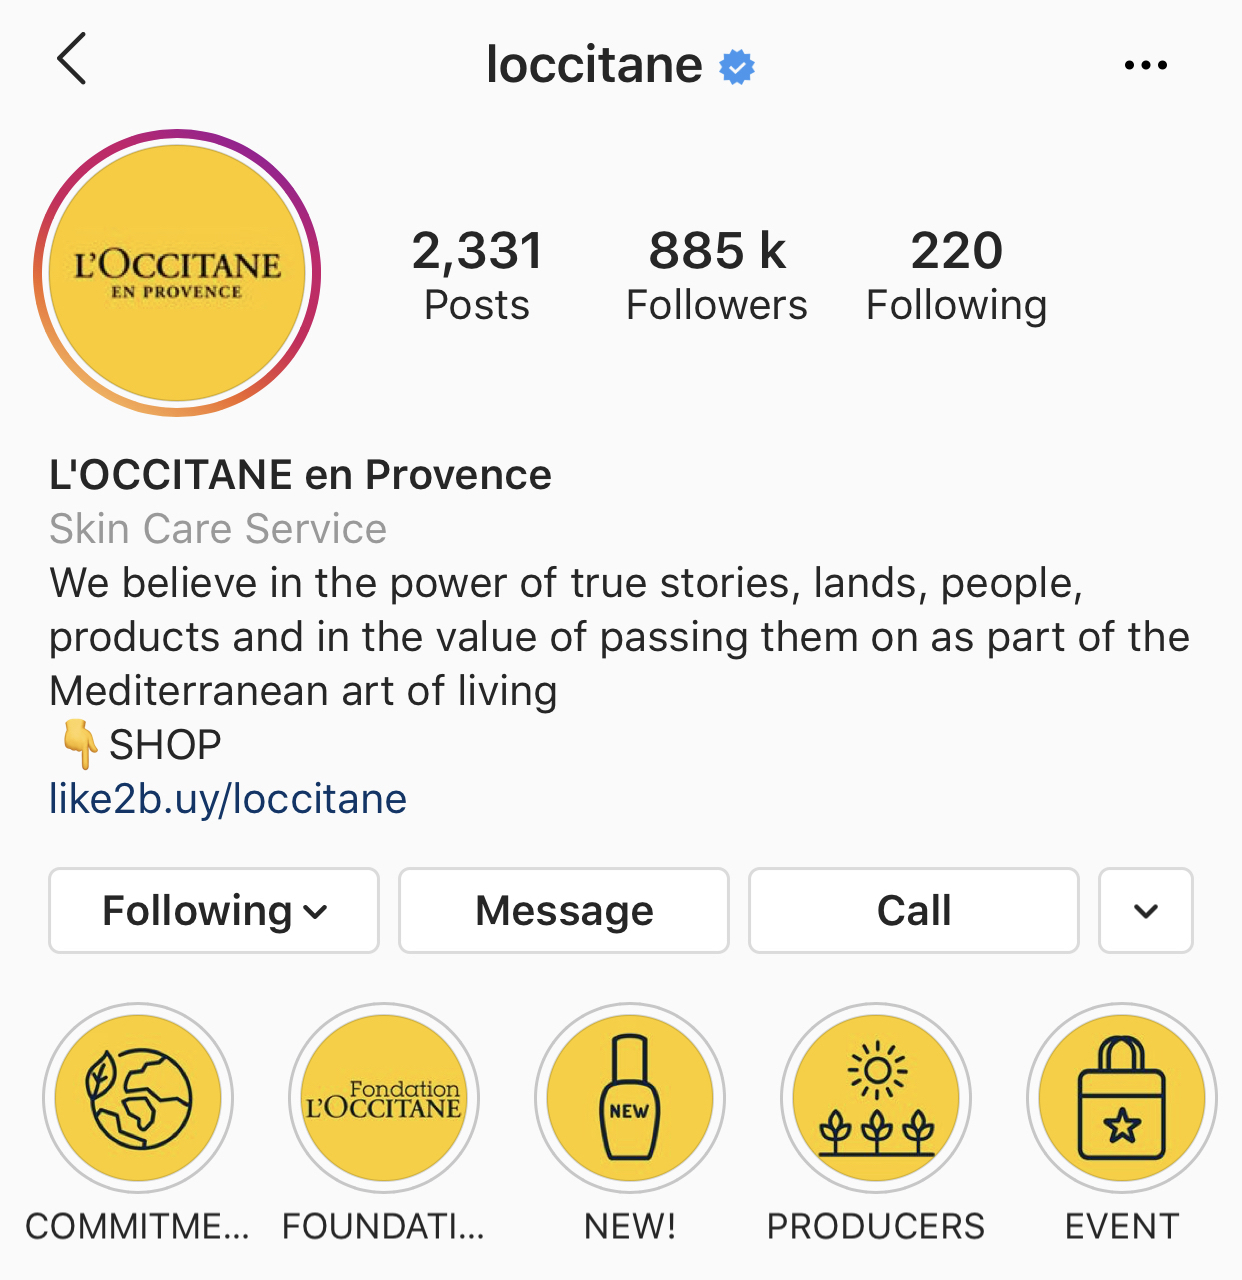 L'Occitane Instagram profile